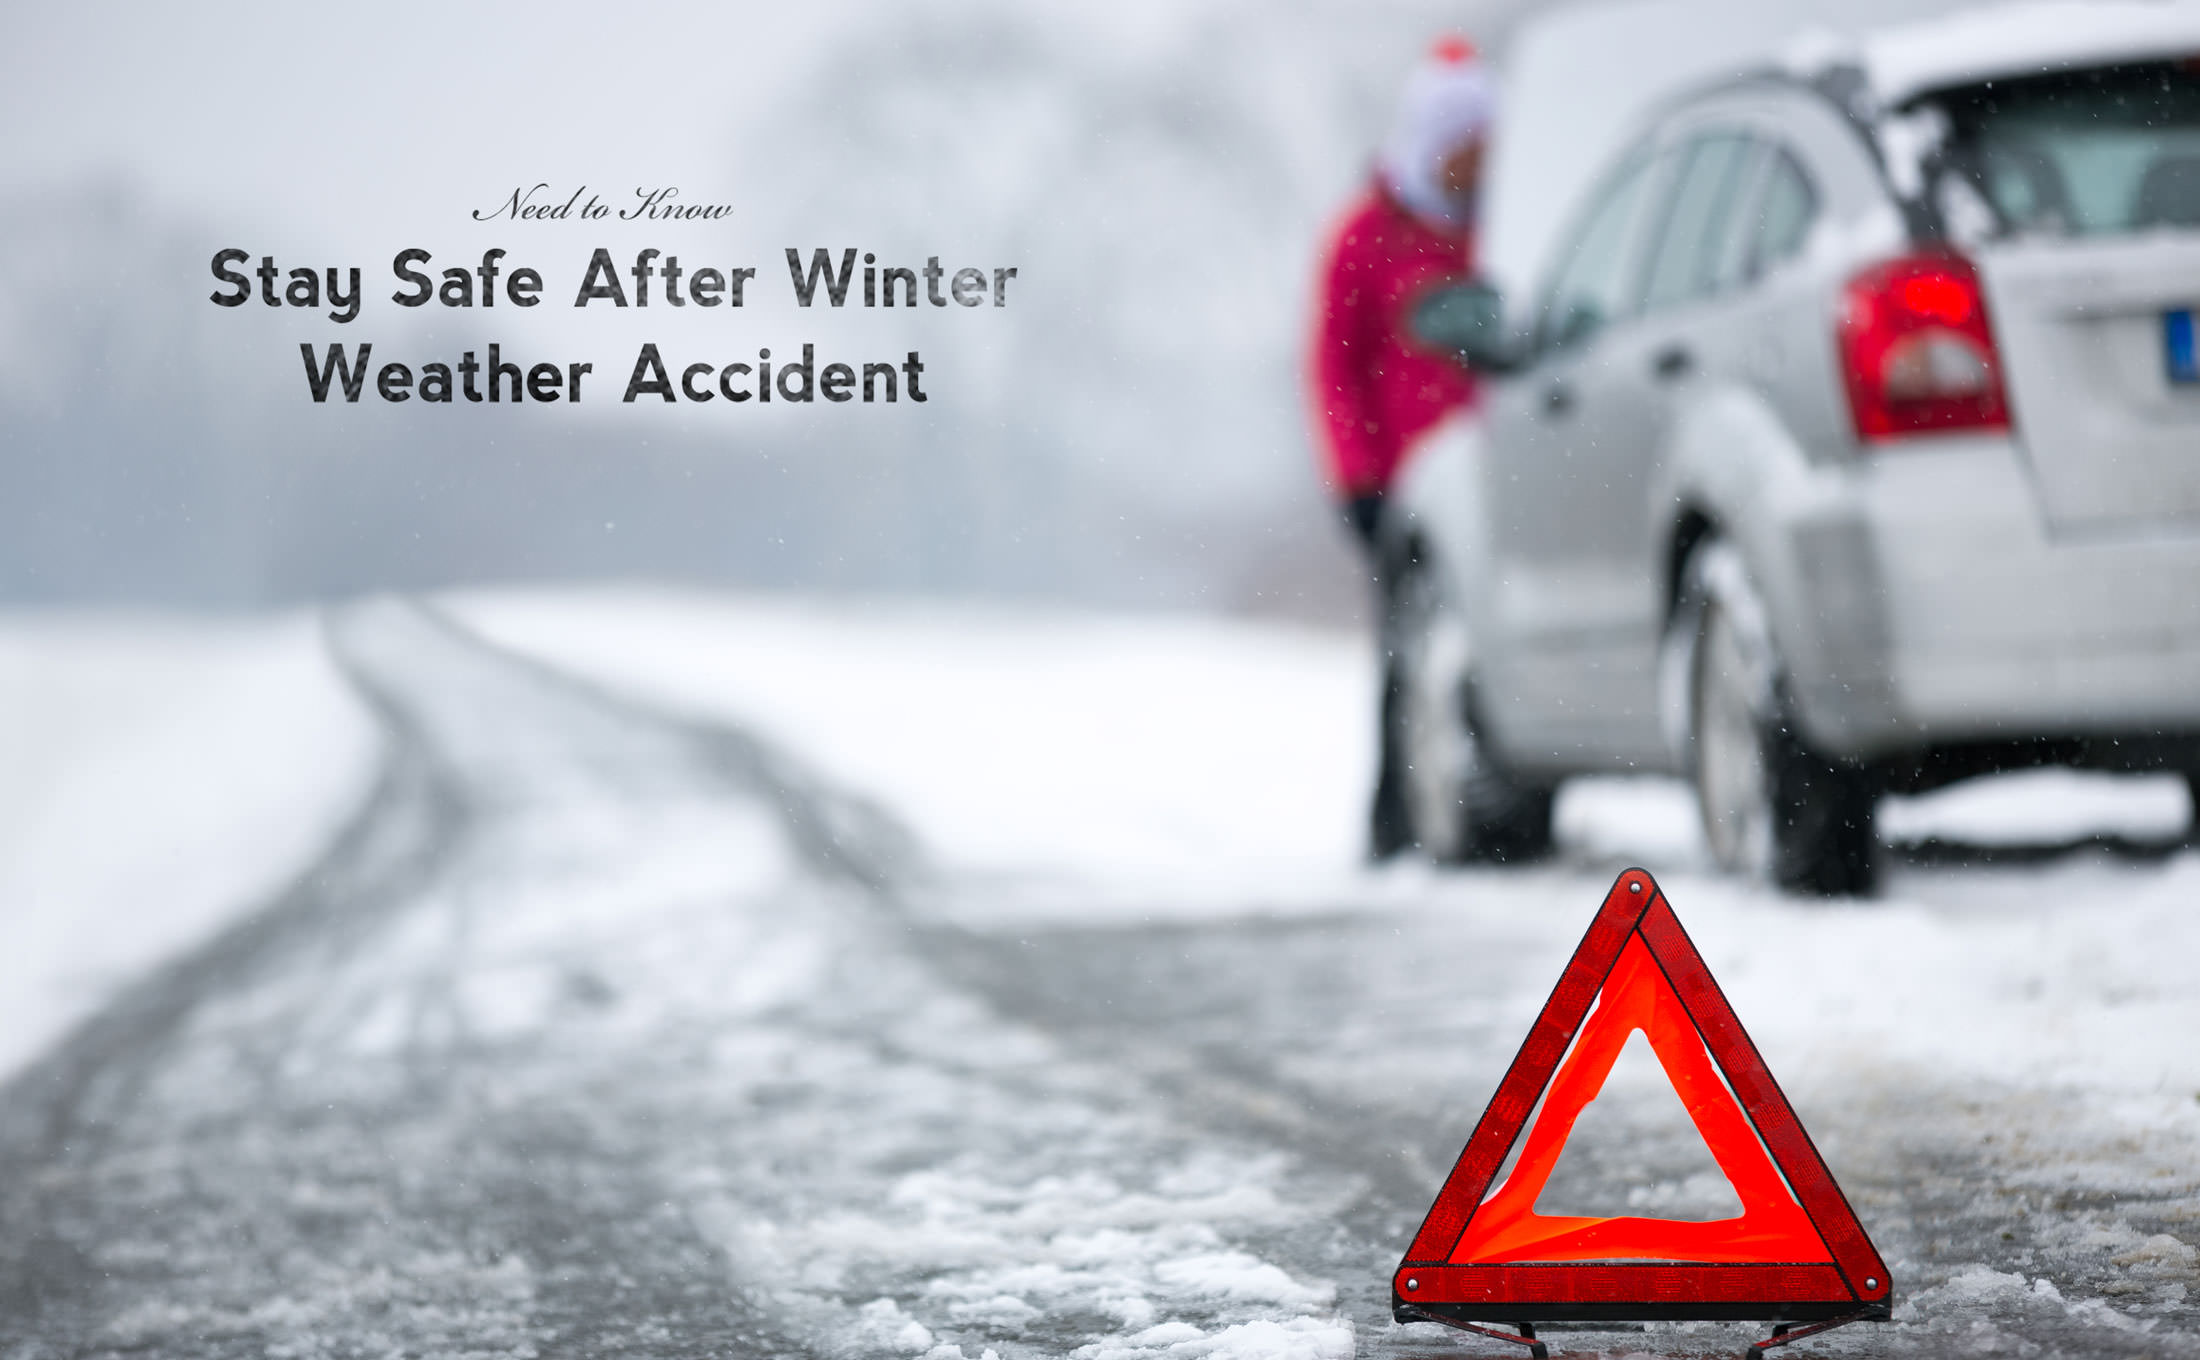 Stay Safe After Winter Weather Accident